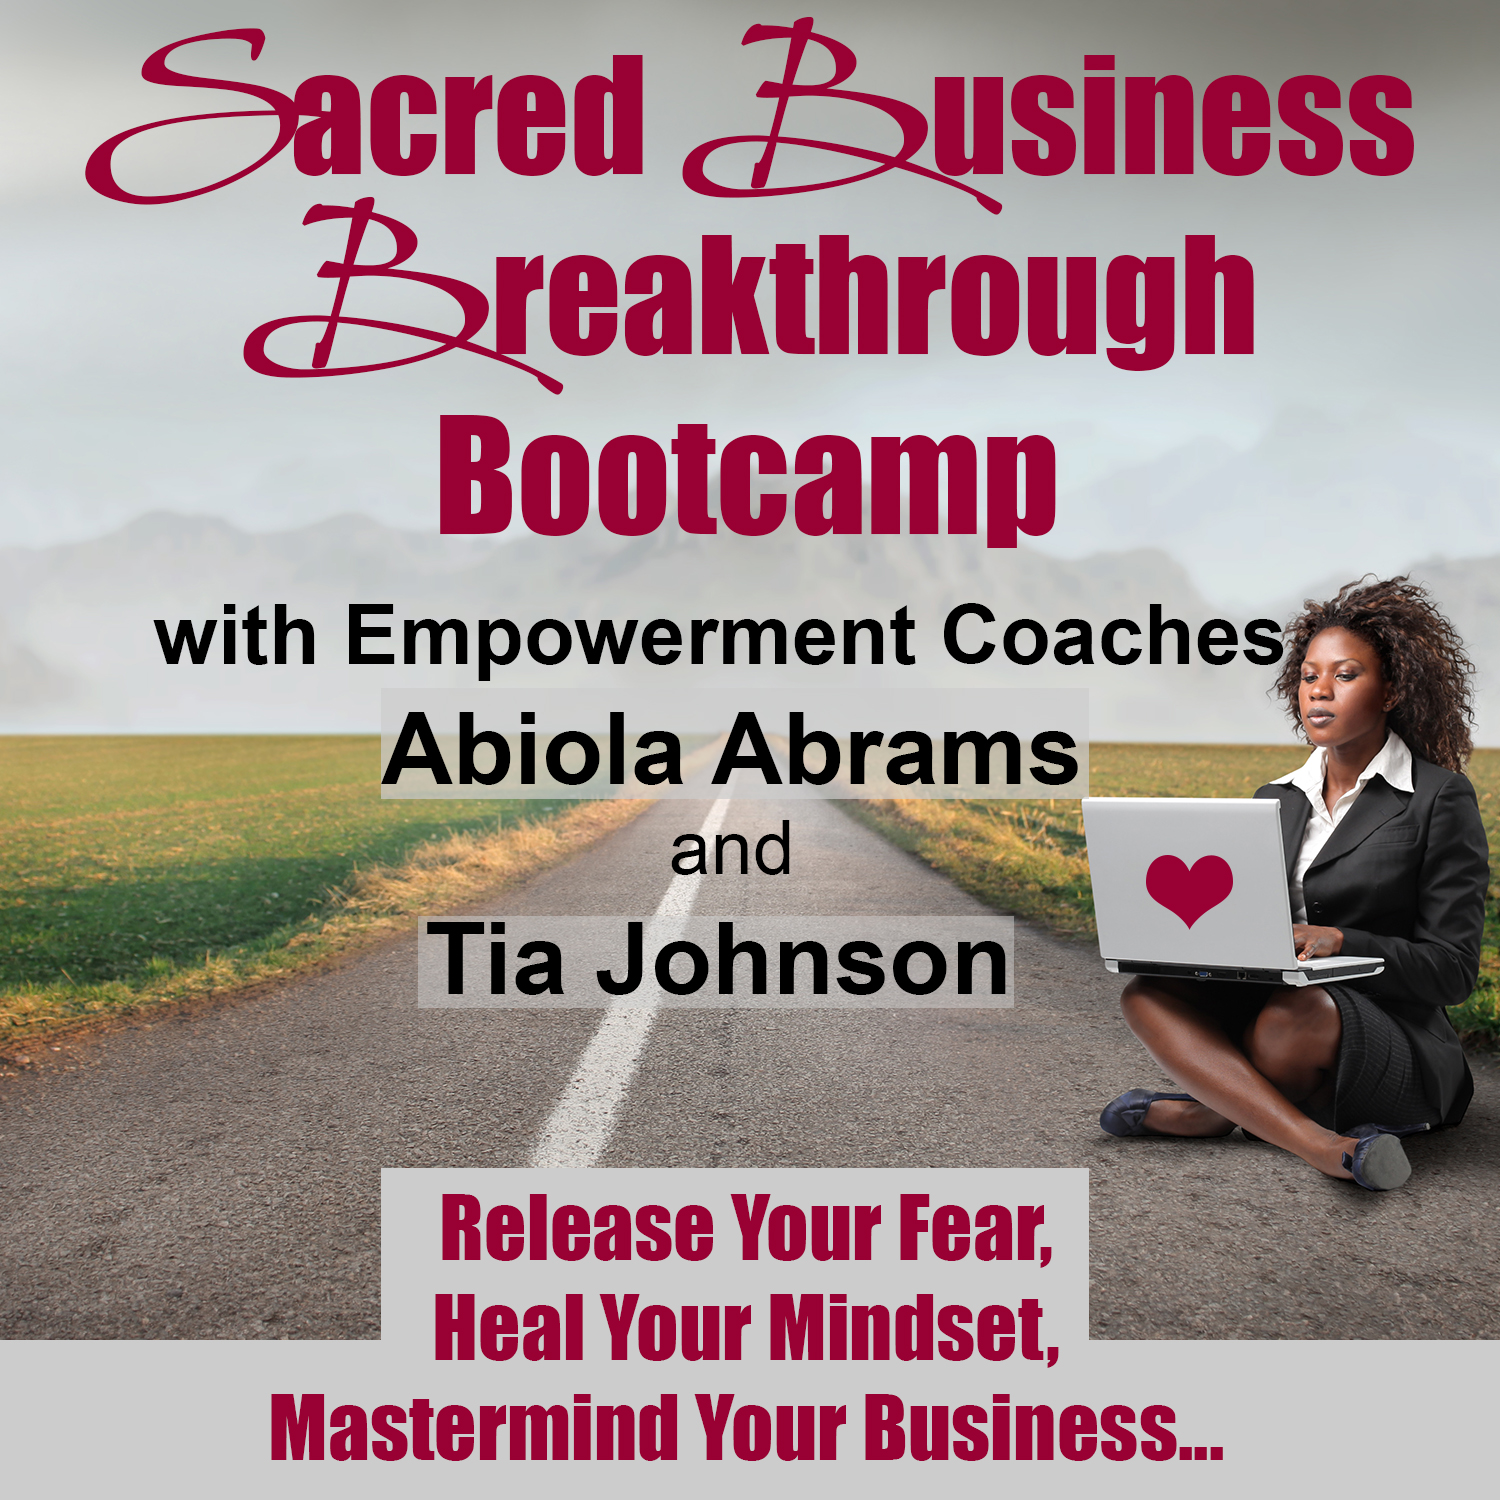 Your Heart-Centered Business Bootcamp